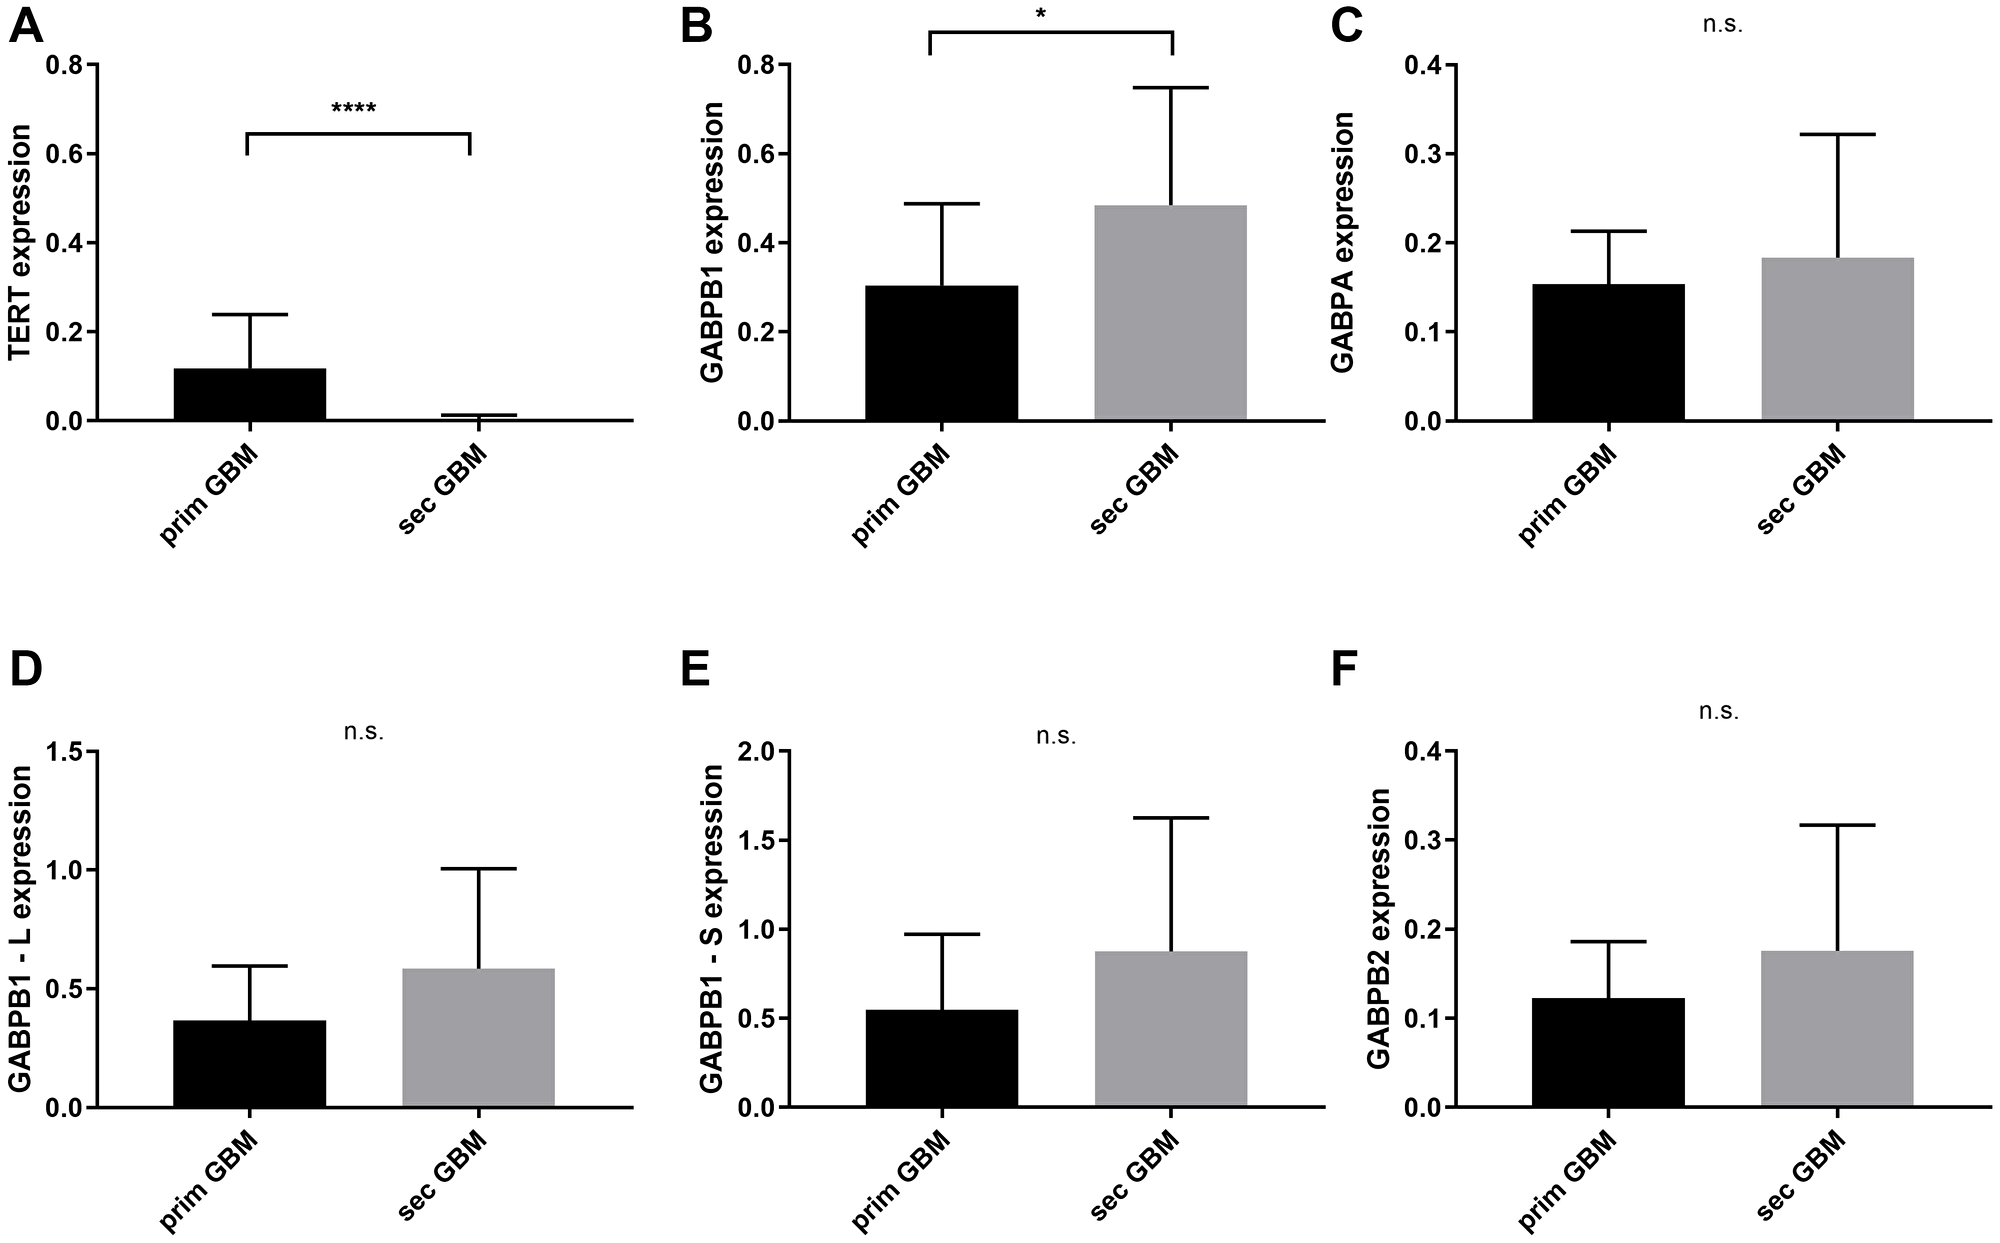 TERT and GABPA/B isoforms mRNA expressional status between primary and secondary glioblastomas with and without chemotherapy.